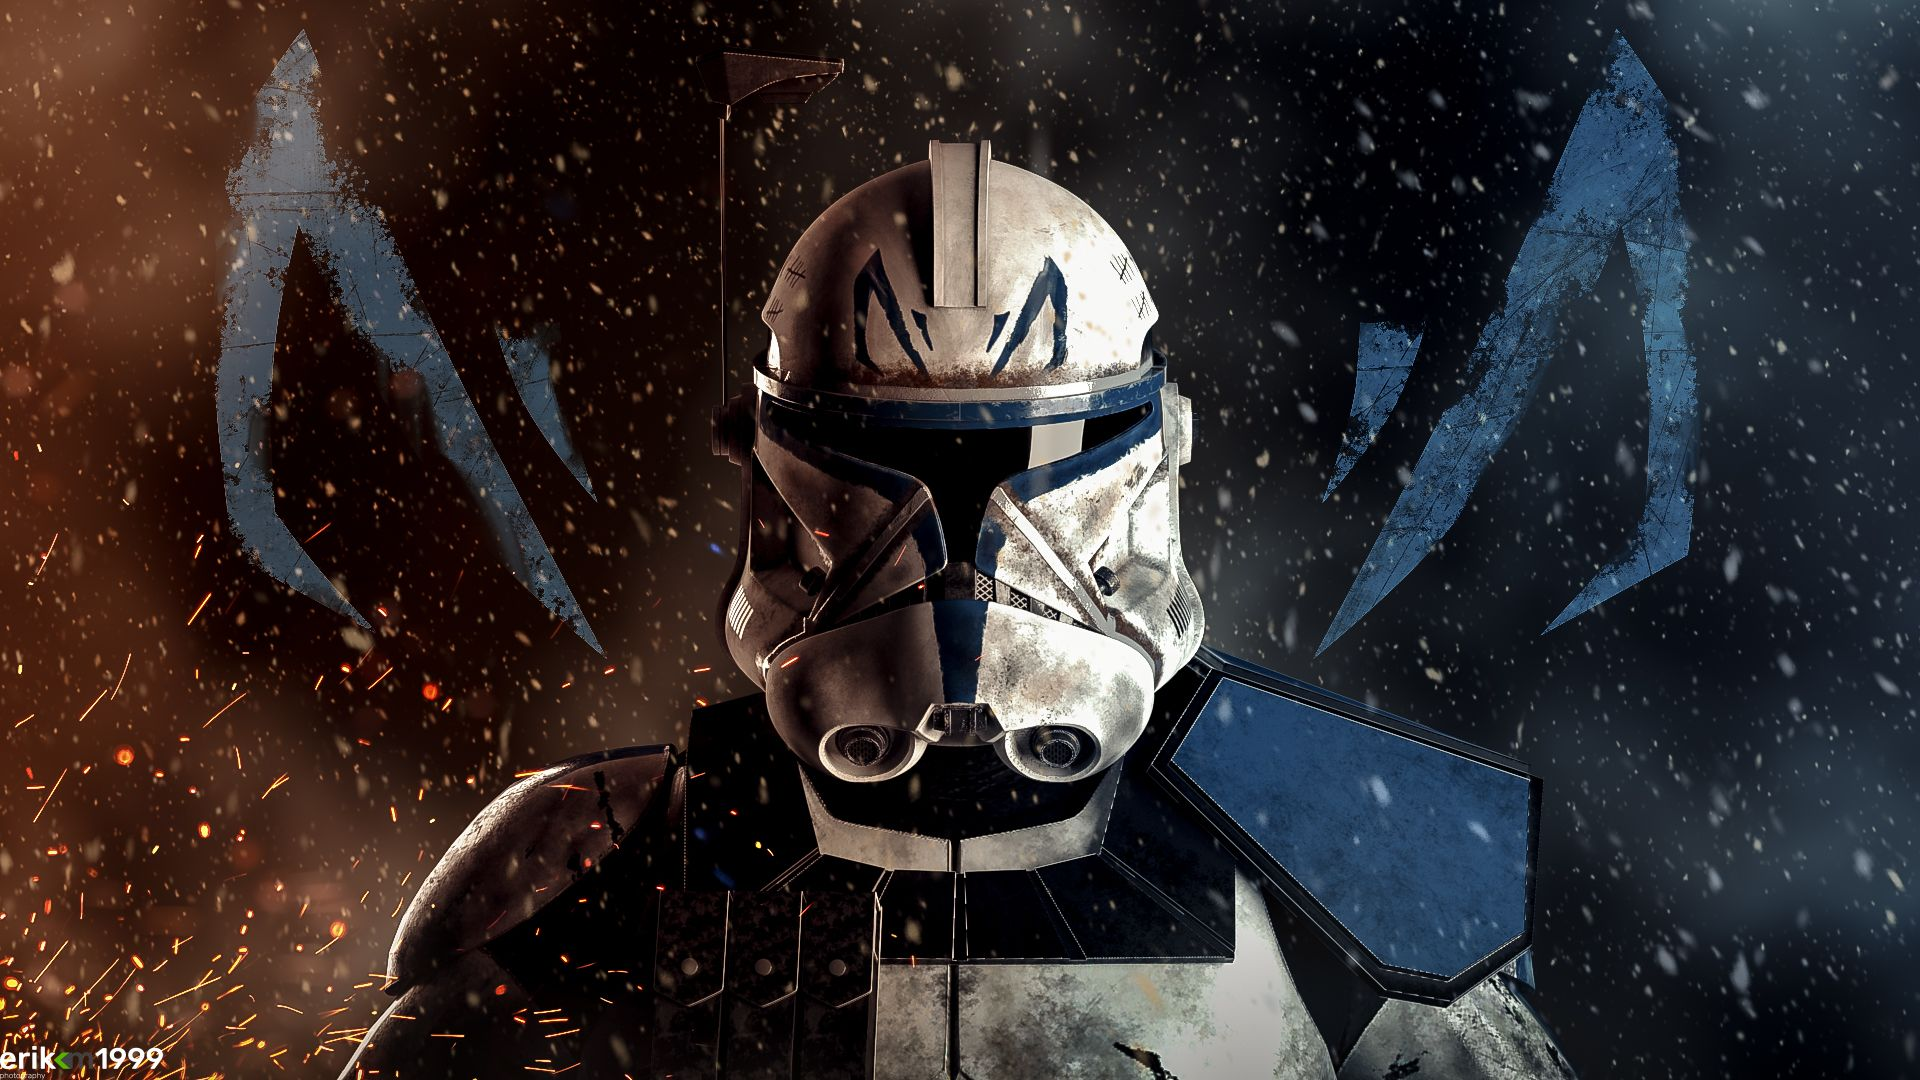 Captains of the Future – Get a Cool Captain Rex Wallpaper Wallpaper For Your Computer